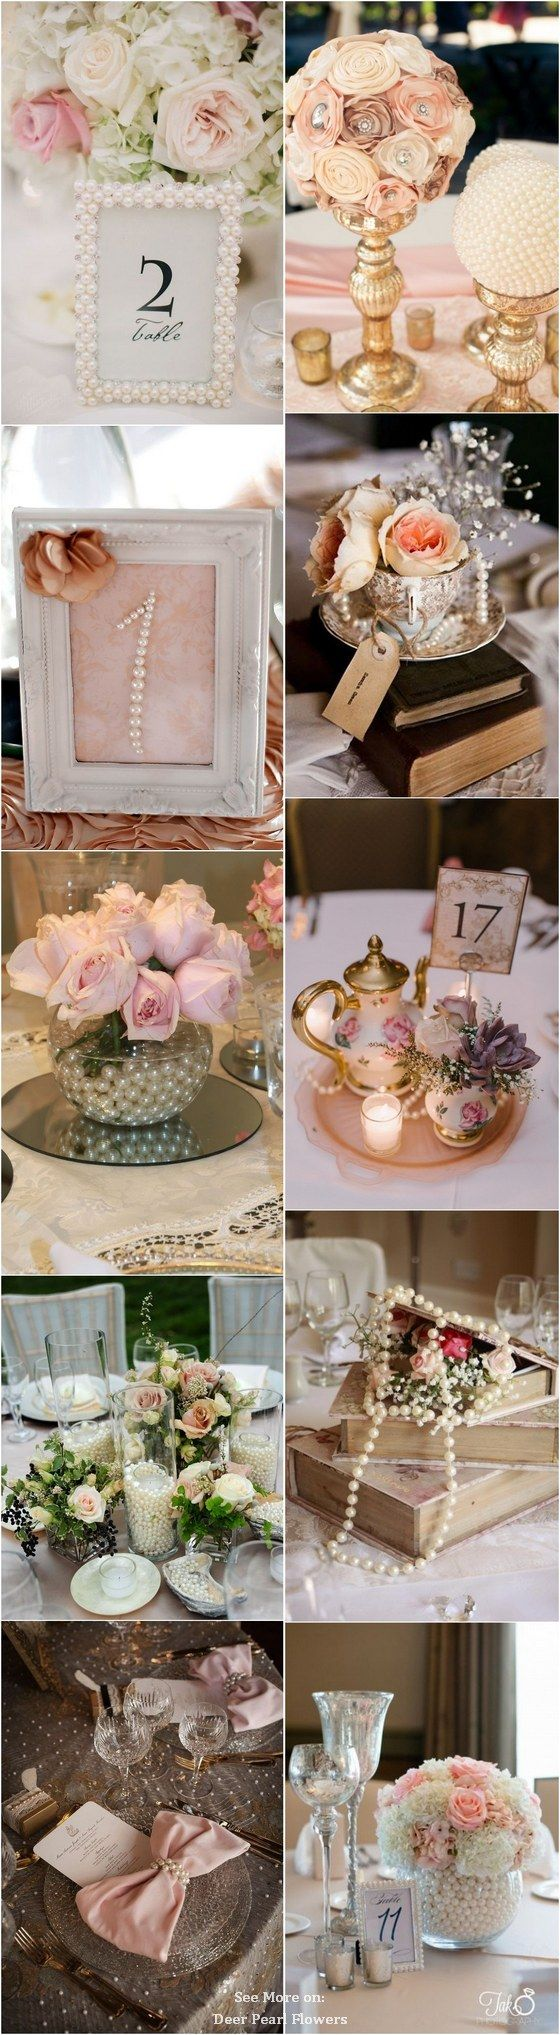 35 Chic Vintage Pearl Wedding Ideas Youll Love Vintage pearls